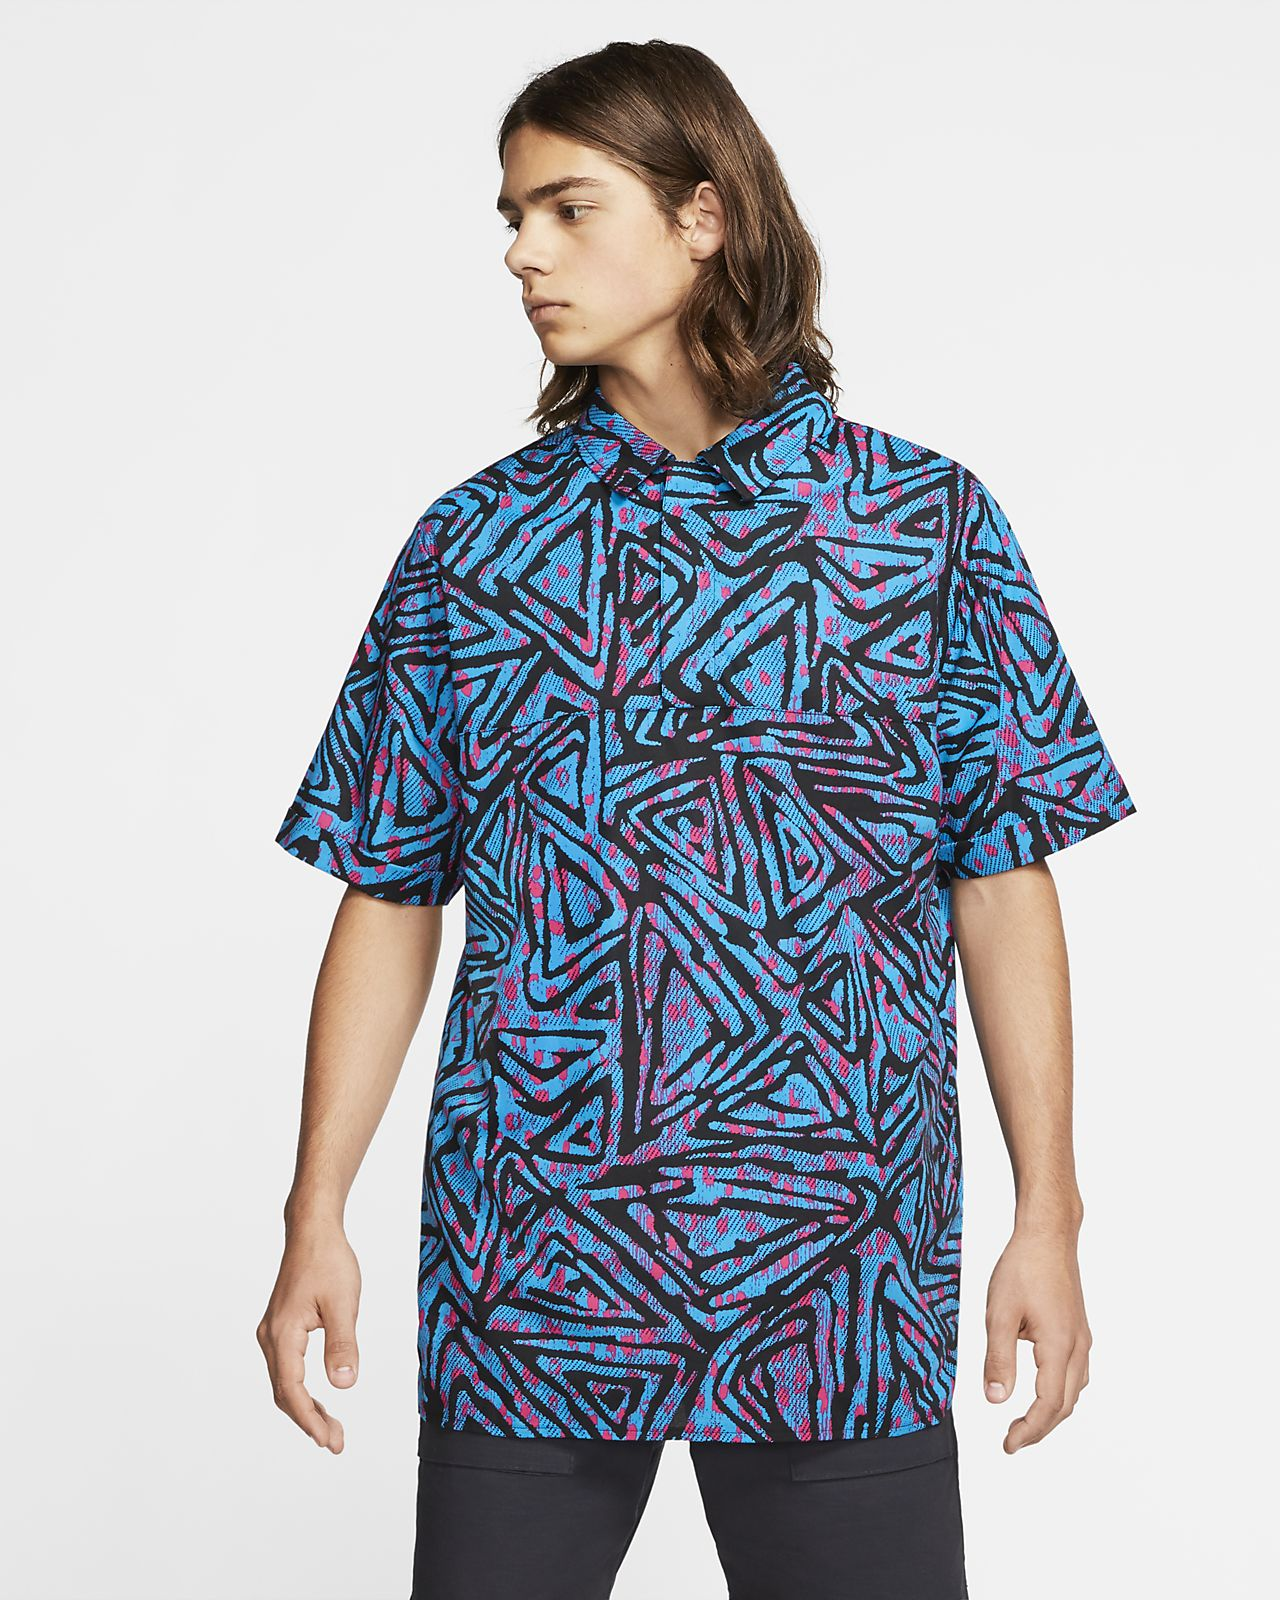 Nike SB Men's Printed Woven Skate Polo